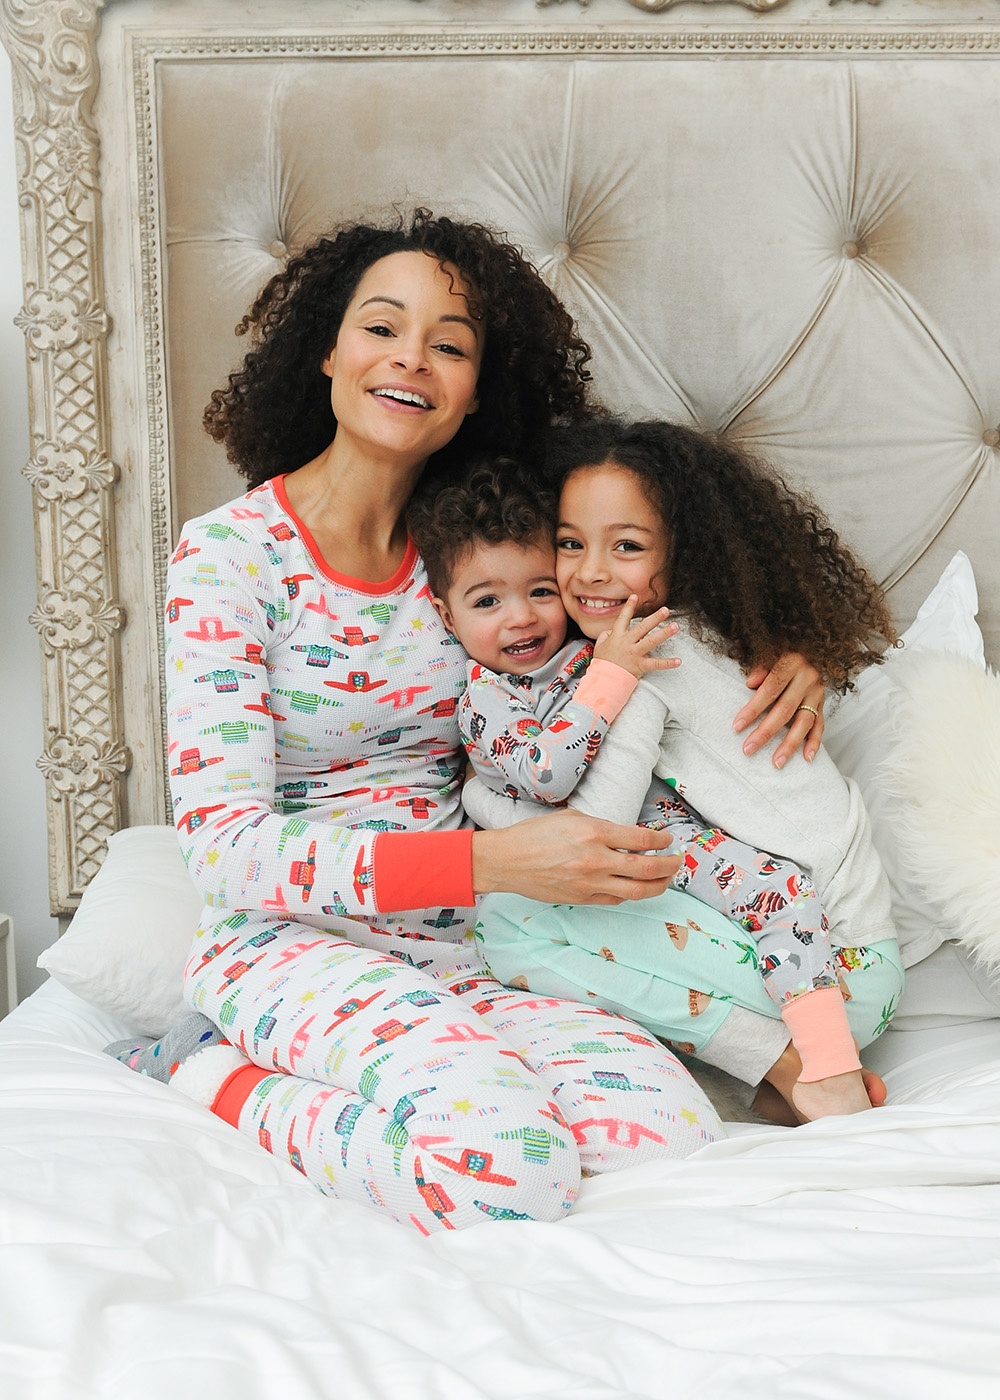 Old Navy Has You Ered For All Of Your Slumber Party Needs With 6 New Matching Pj Sets The Entire Family From Skiing Dogs Beach Santa